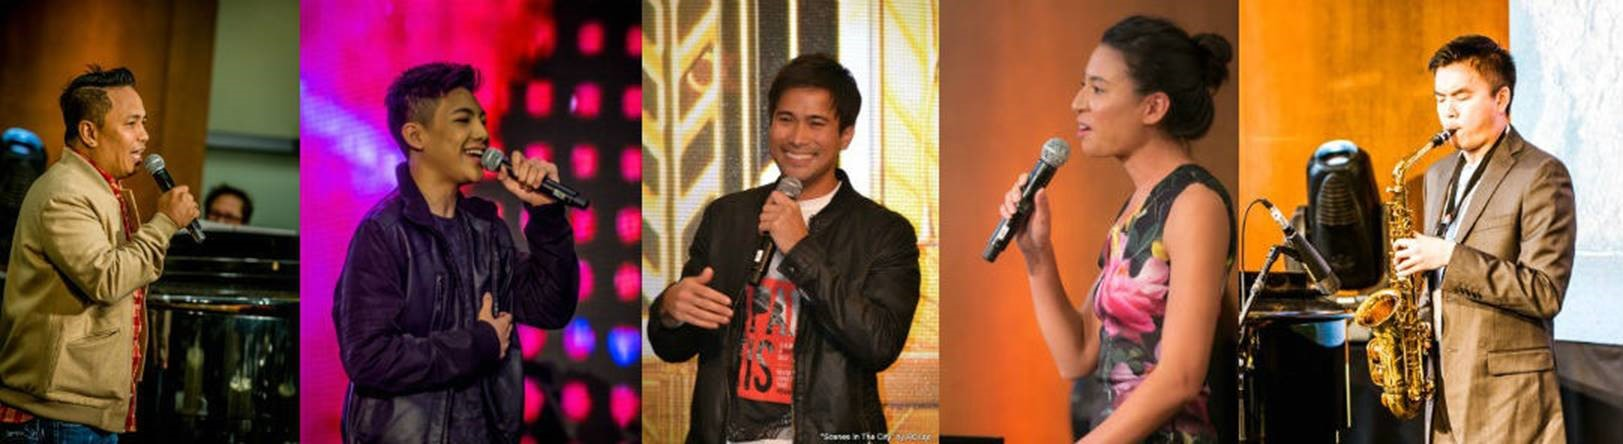 Performers Eric Nicolas, Darren Espanto, Sam Milby, Melissa Morgan and Michael Cody Dear